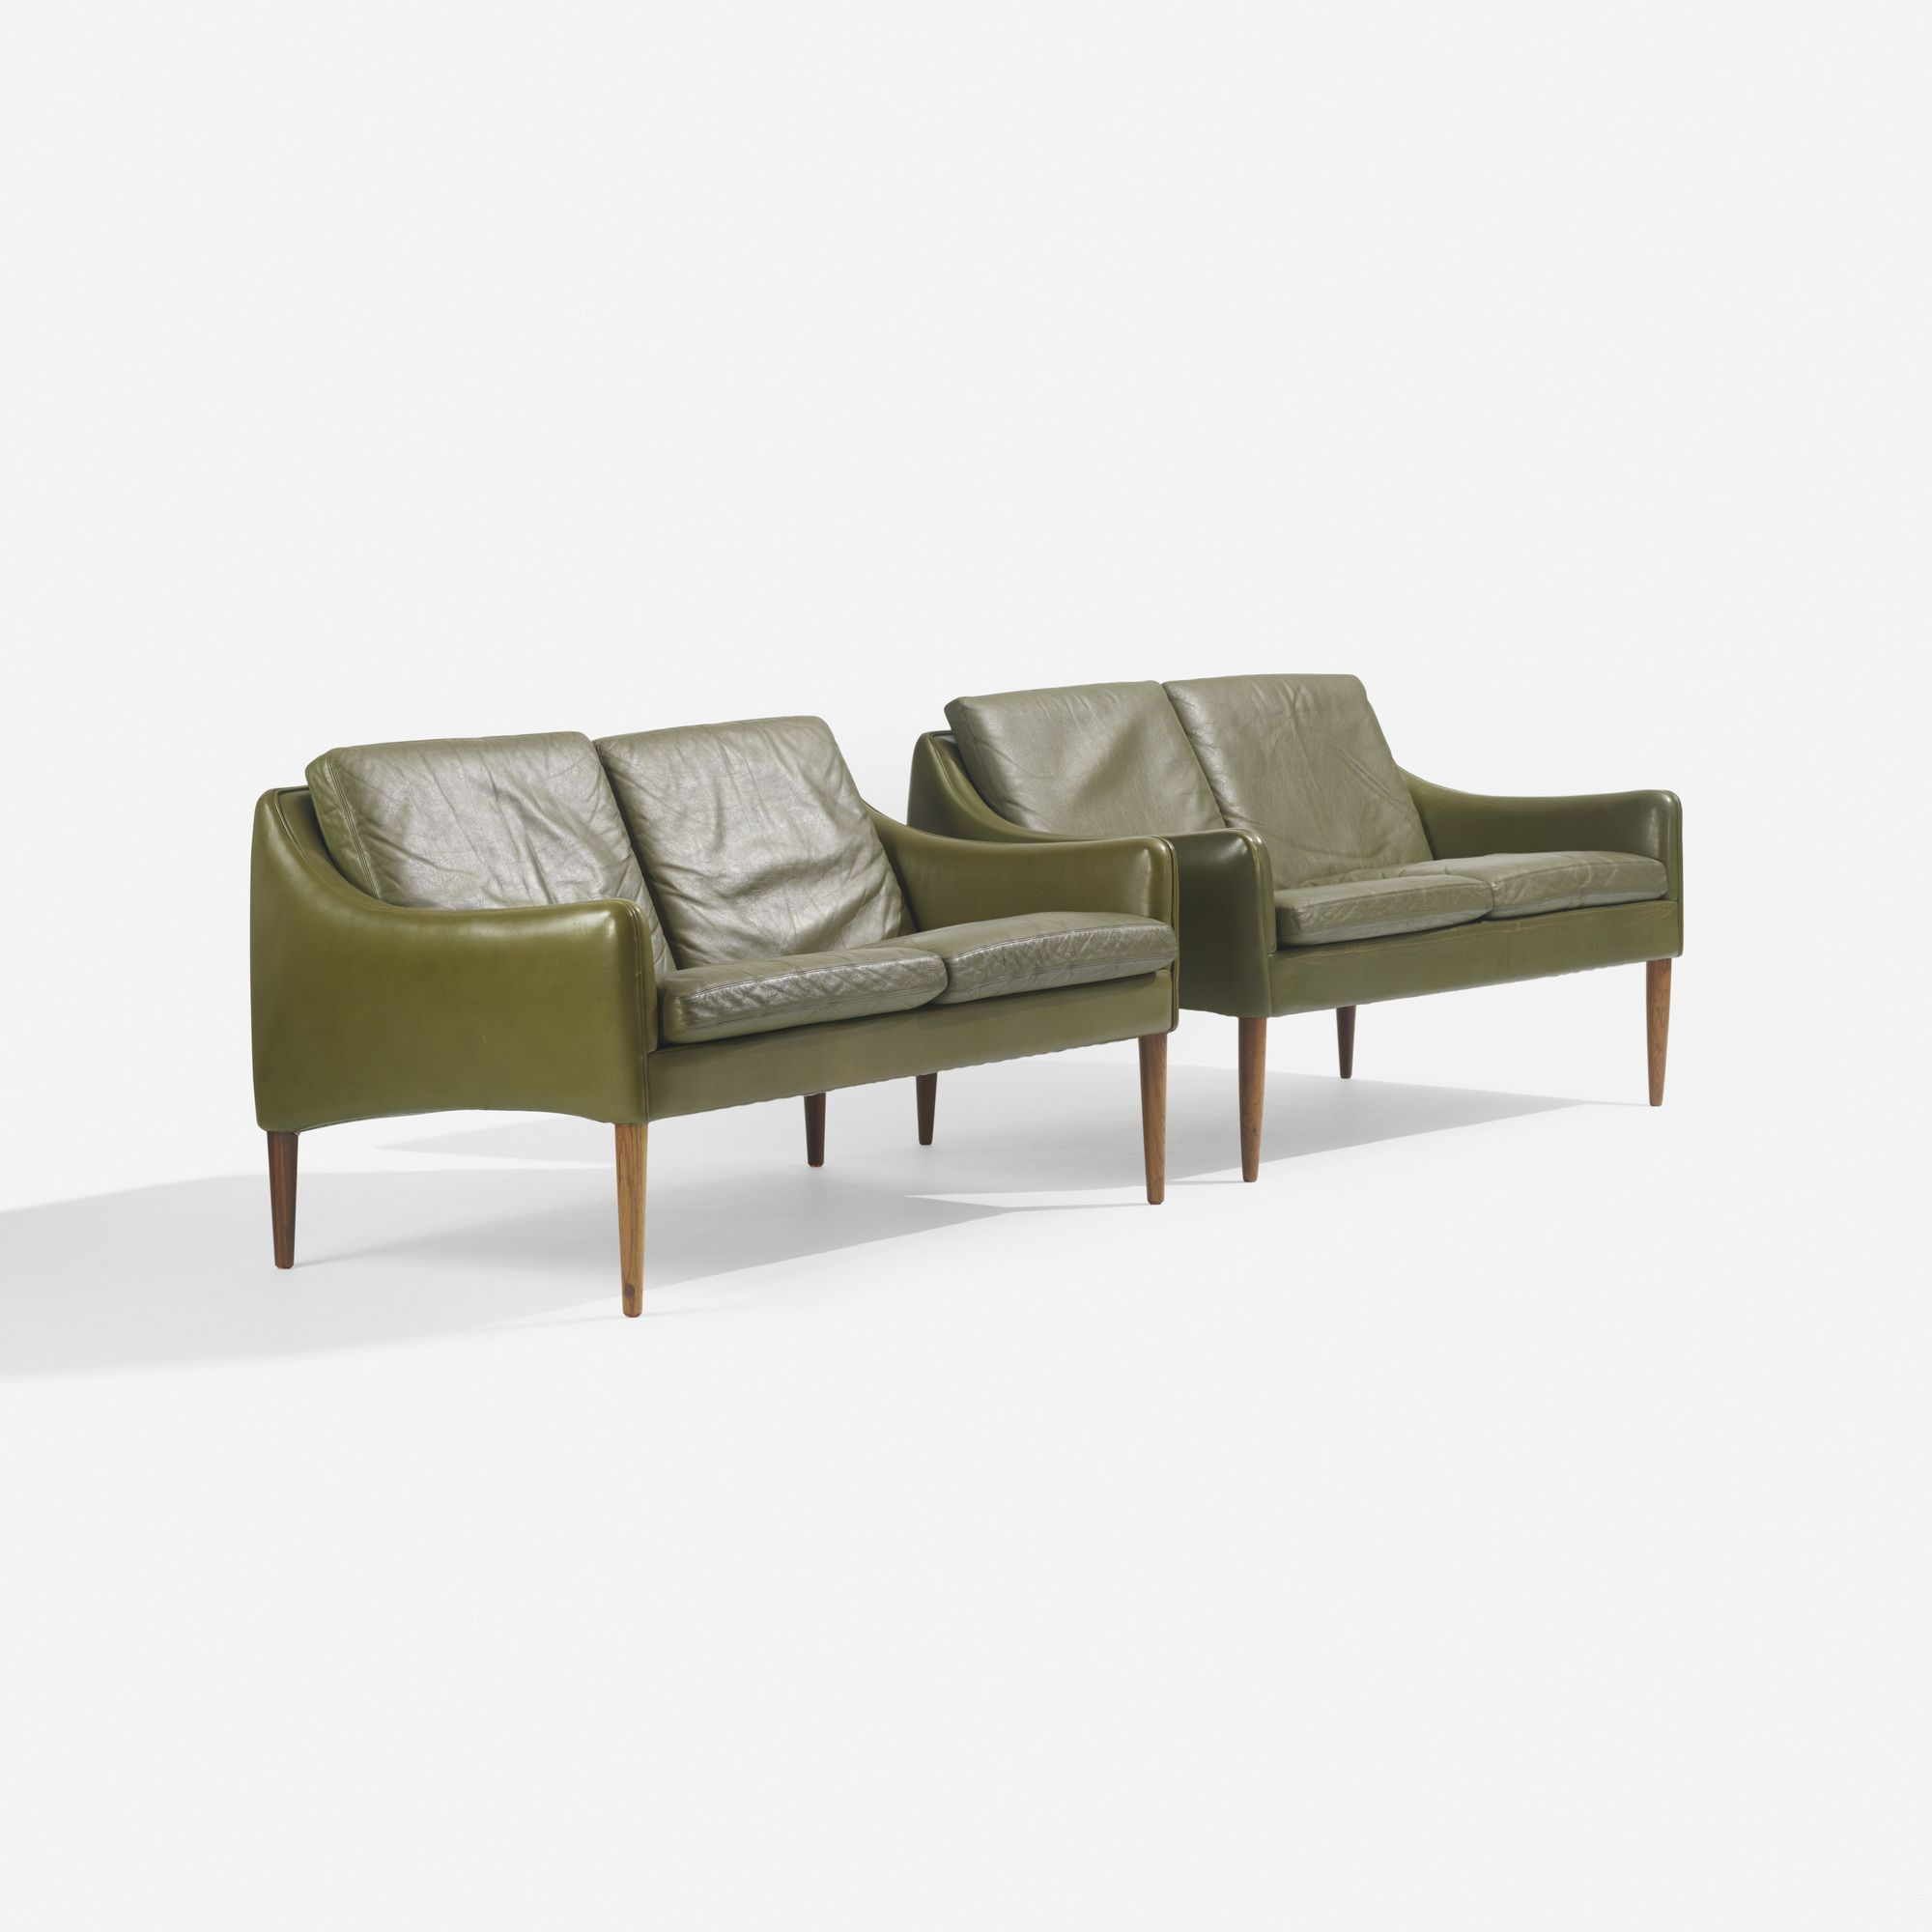 1960s danish green leather sofa by skipper furniture vintage